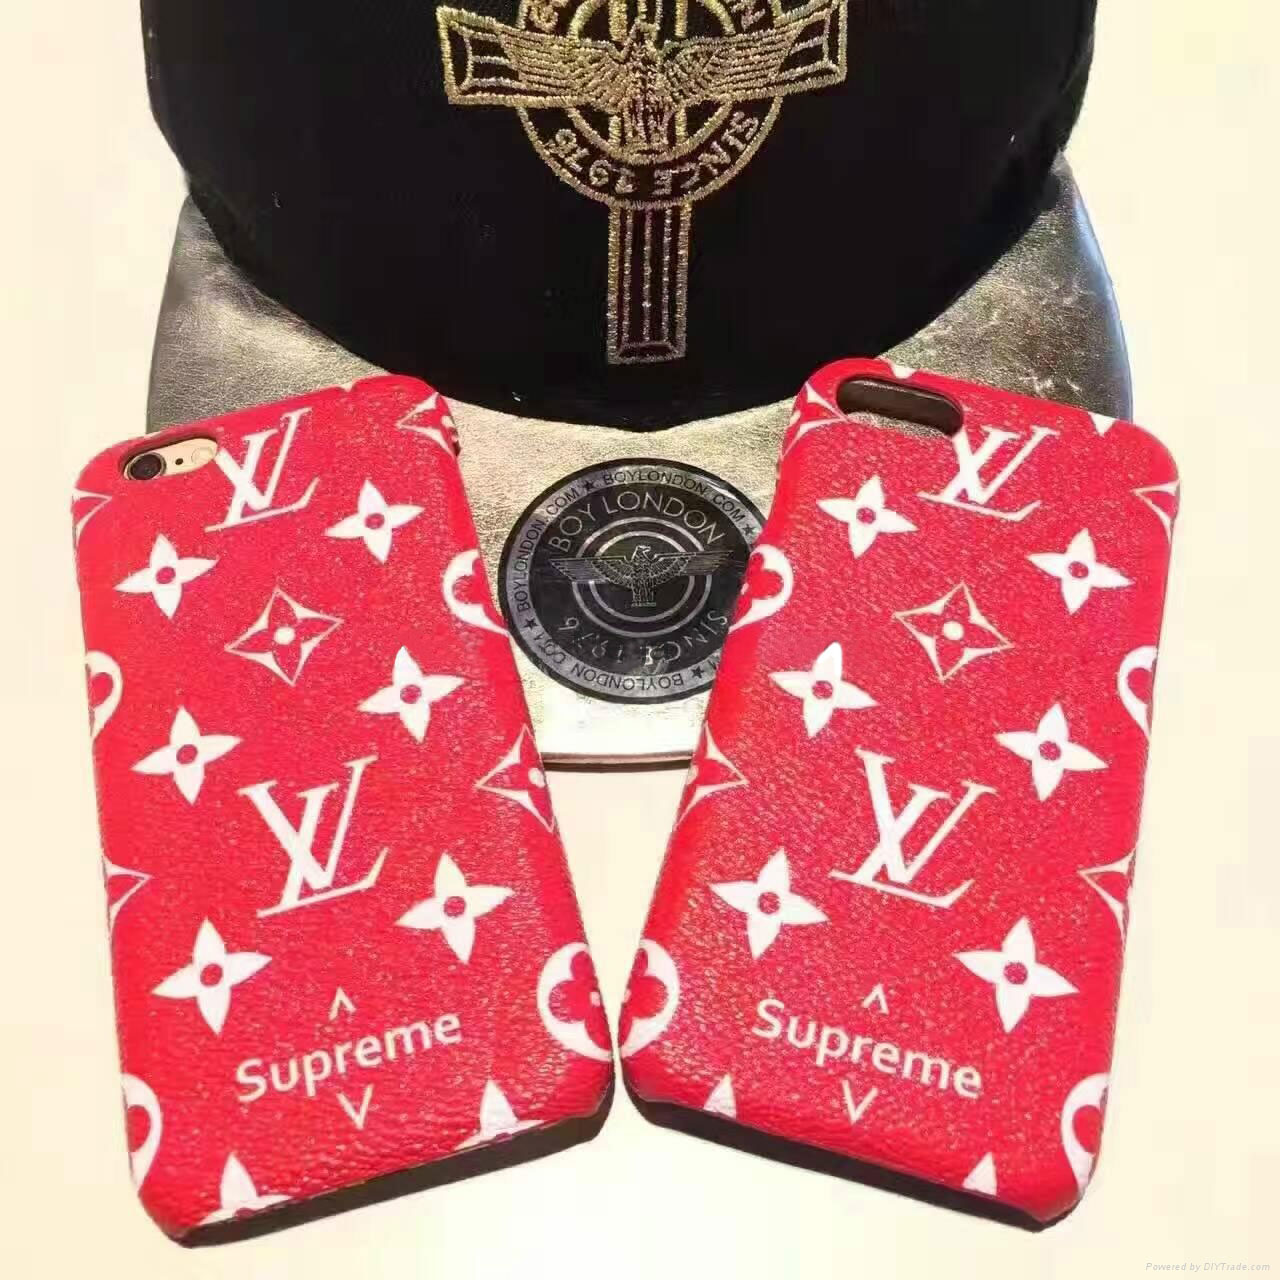 Supreme & LV Iphone6/6s Iphone6/6s Plus Iphone7 Iphone7 Plus Iphone8 Iphone8 Plus ケース